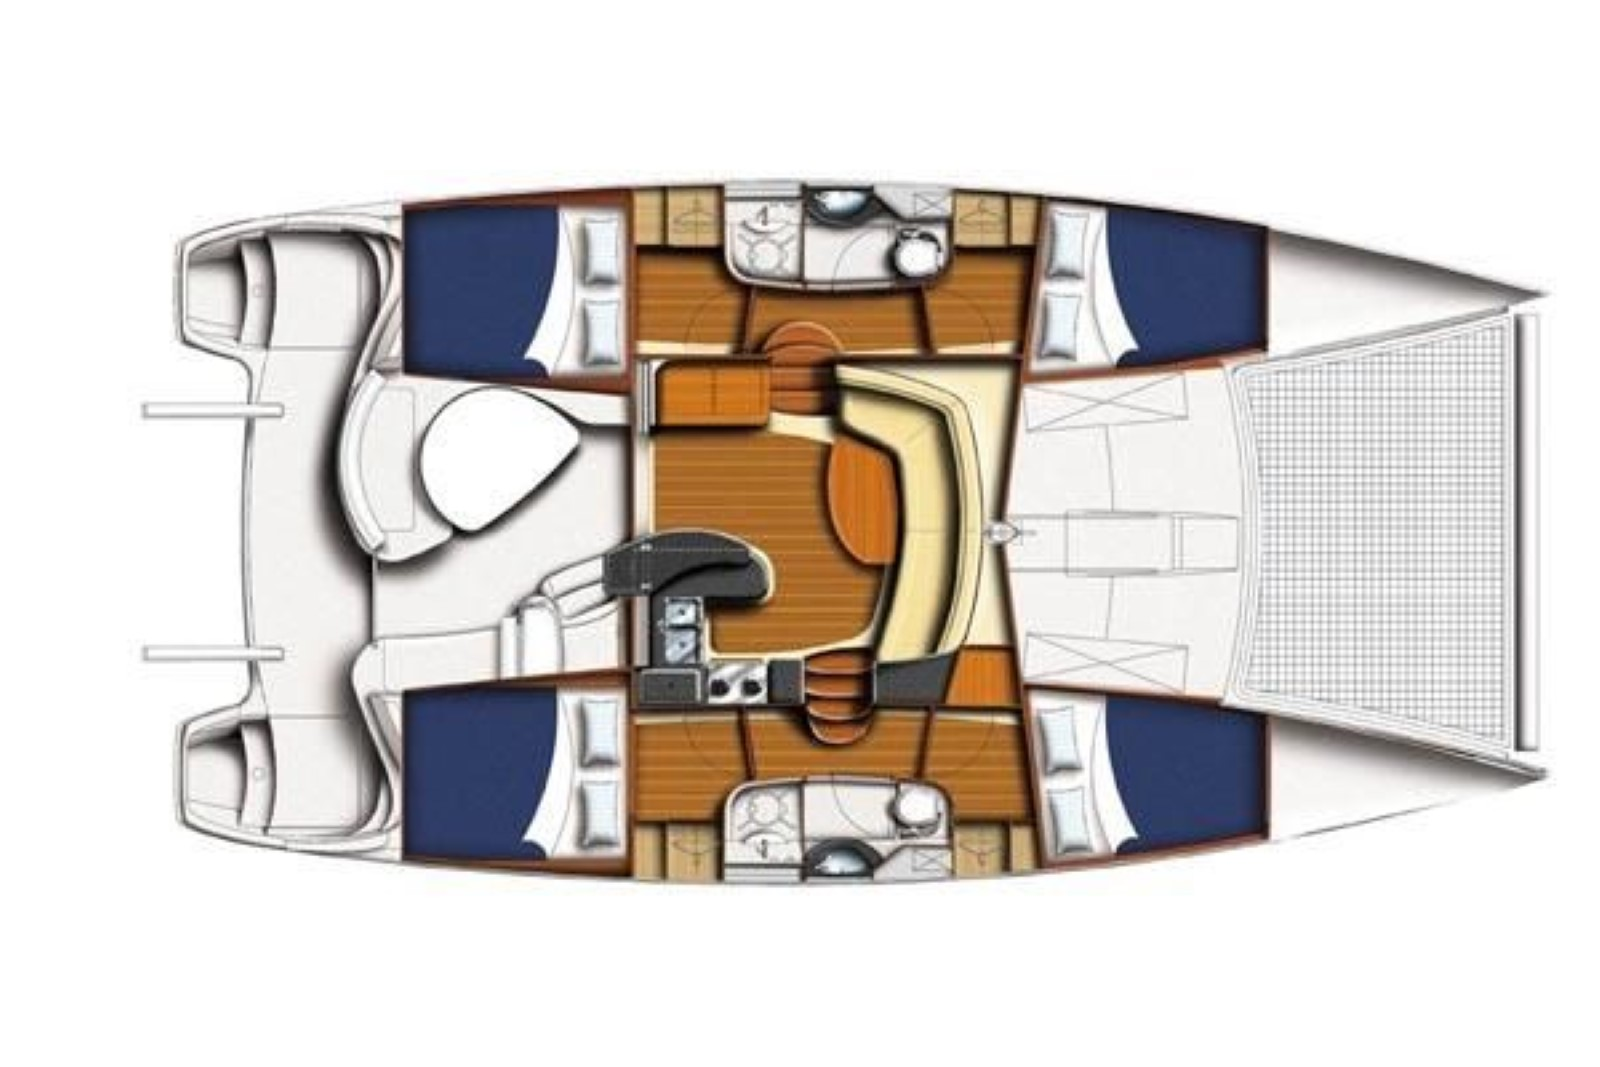 Leopard 40 Catamaran Layout